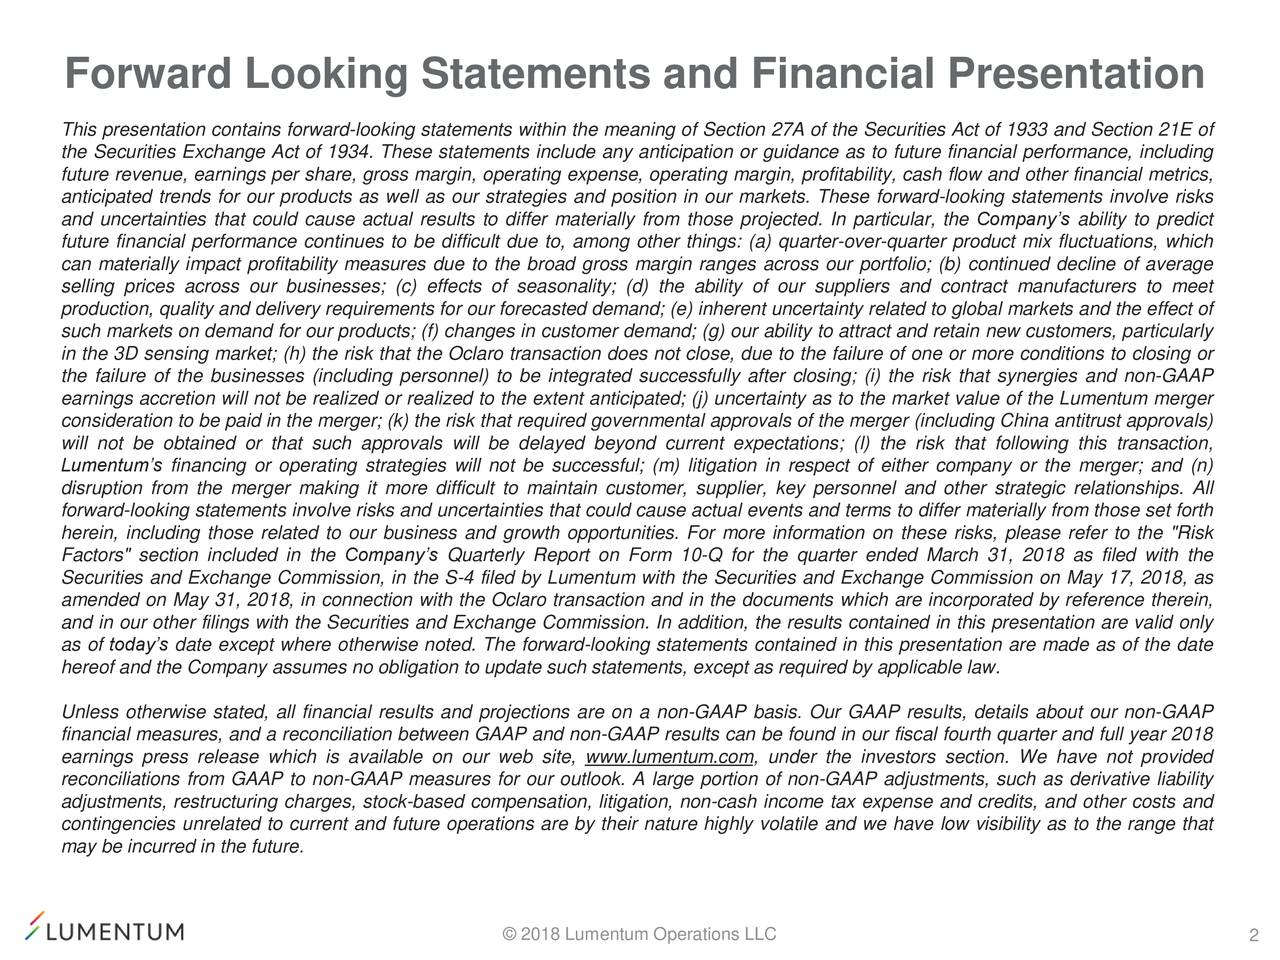 This presentation contains forward-looking statements within the meaning of Section 27A of the Securities Act of 1933 and Section 21E of the Securities Exchange Act of 1934. These statements include any anticipation or guidance as to future financial performance, including future revenue, earnings per share, gross margin, operating expense, operating margin, profitability, cash flow and other financial metrics, anticipated trends for our products as well as our strategies and position in our markets. These forward-looking statements involve risks and uncertainties that could cause actual results to differ materially from those projected. In particular, the Company's ability to predict future financial performance continues to be difficult due to, among other things: (a) quarter-over-quarter product mix fluctuations, which can materially impact profitability measures due to the broad gross margin ranges across our portfolio; (b) continued decline of average selling prices across our businesses; (c) effects of seasonality; (d) the ability of our suppliers and contract manufacturers to meet production, quality and delivery requirements for our forecasted demand; (e) inherent uncertainty related to global markets and the effect of such markets on demand for our products; (f) changes in customer demand; (g) our ability to attract and retain new customers, particularly in the 3D sensing market; (h) the risk that the Oclaro transaction does not close, due to the failure of one or more conditions to closing or the failure of the businesses (including personnel) to be integrated successfully after closing; (i) the risk that synergies and non-GAAP earnings accretion will not be realized or realized to the extent anticipated; (j) uncertainty as to the market value of the Lumentum merger consideration to be paid in the merger; (k) the risk that required governmental approvals of the merger (including China antitrust approvals) will not be obtained or that such approvals will be